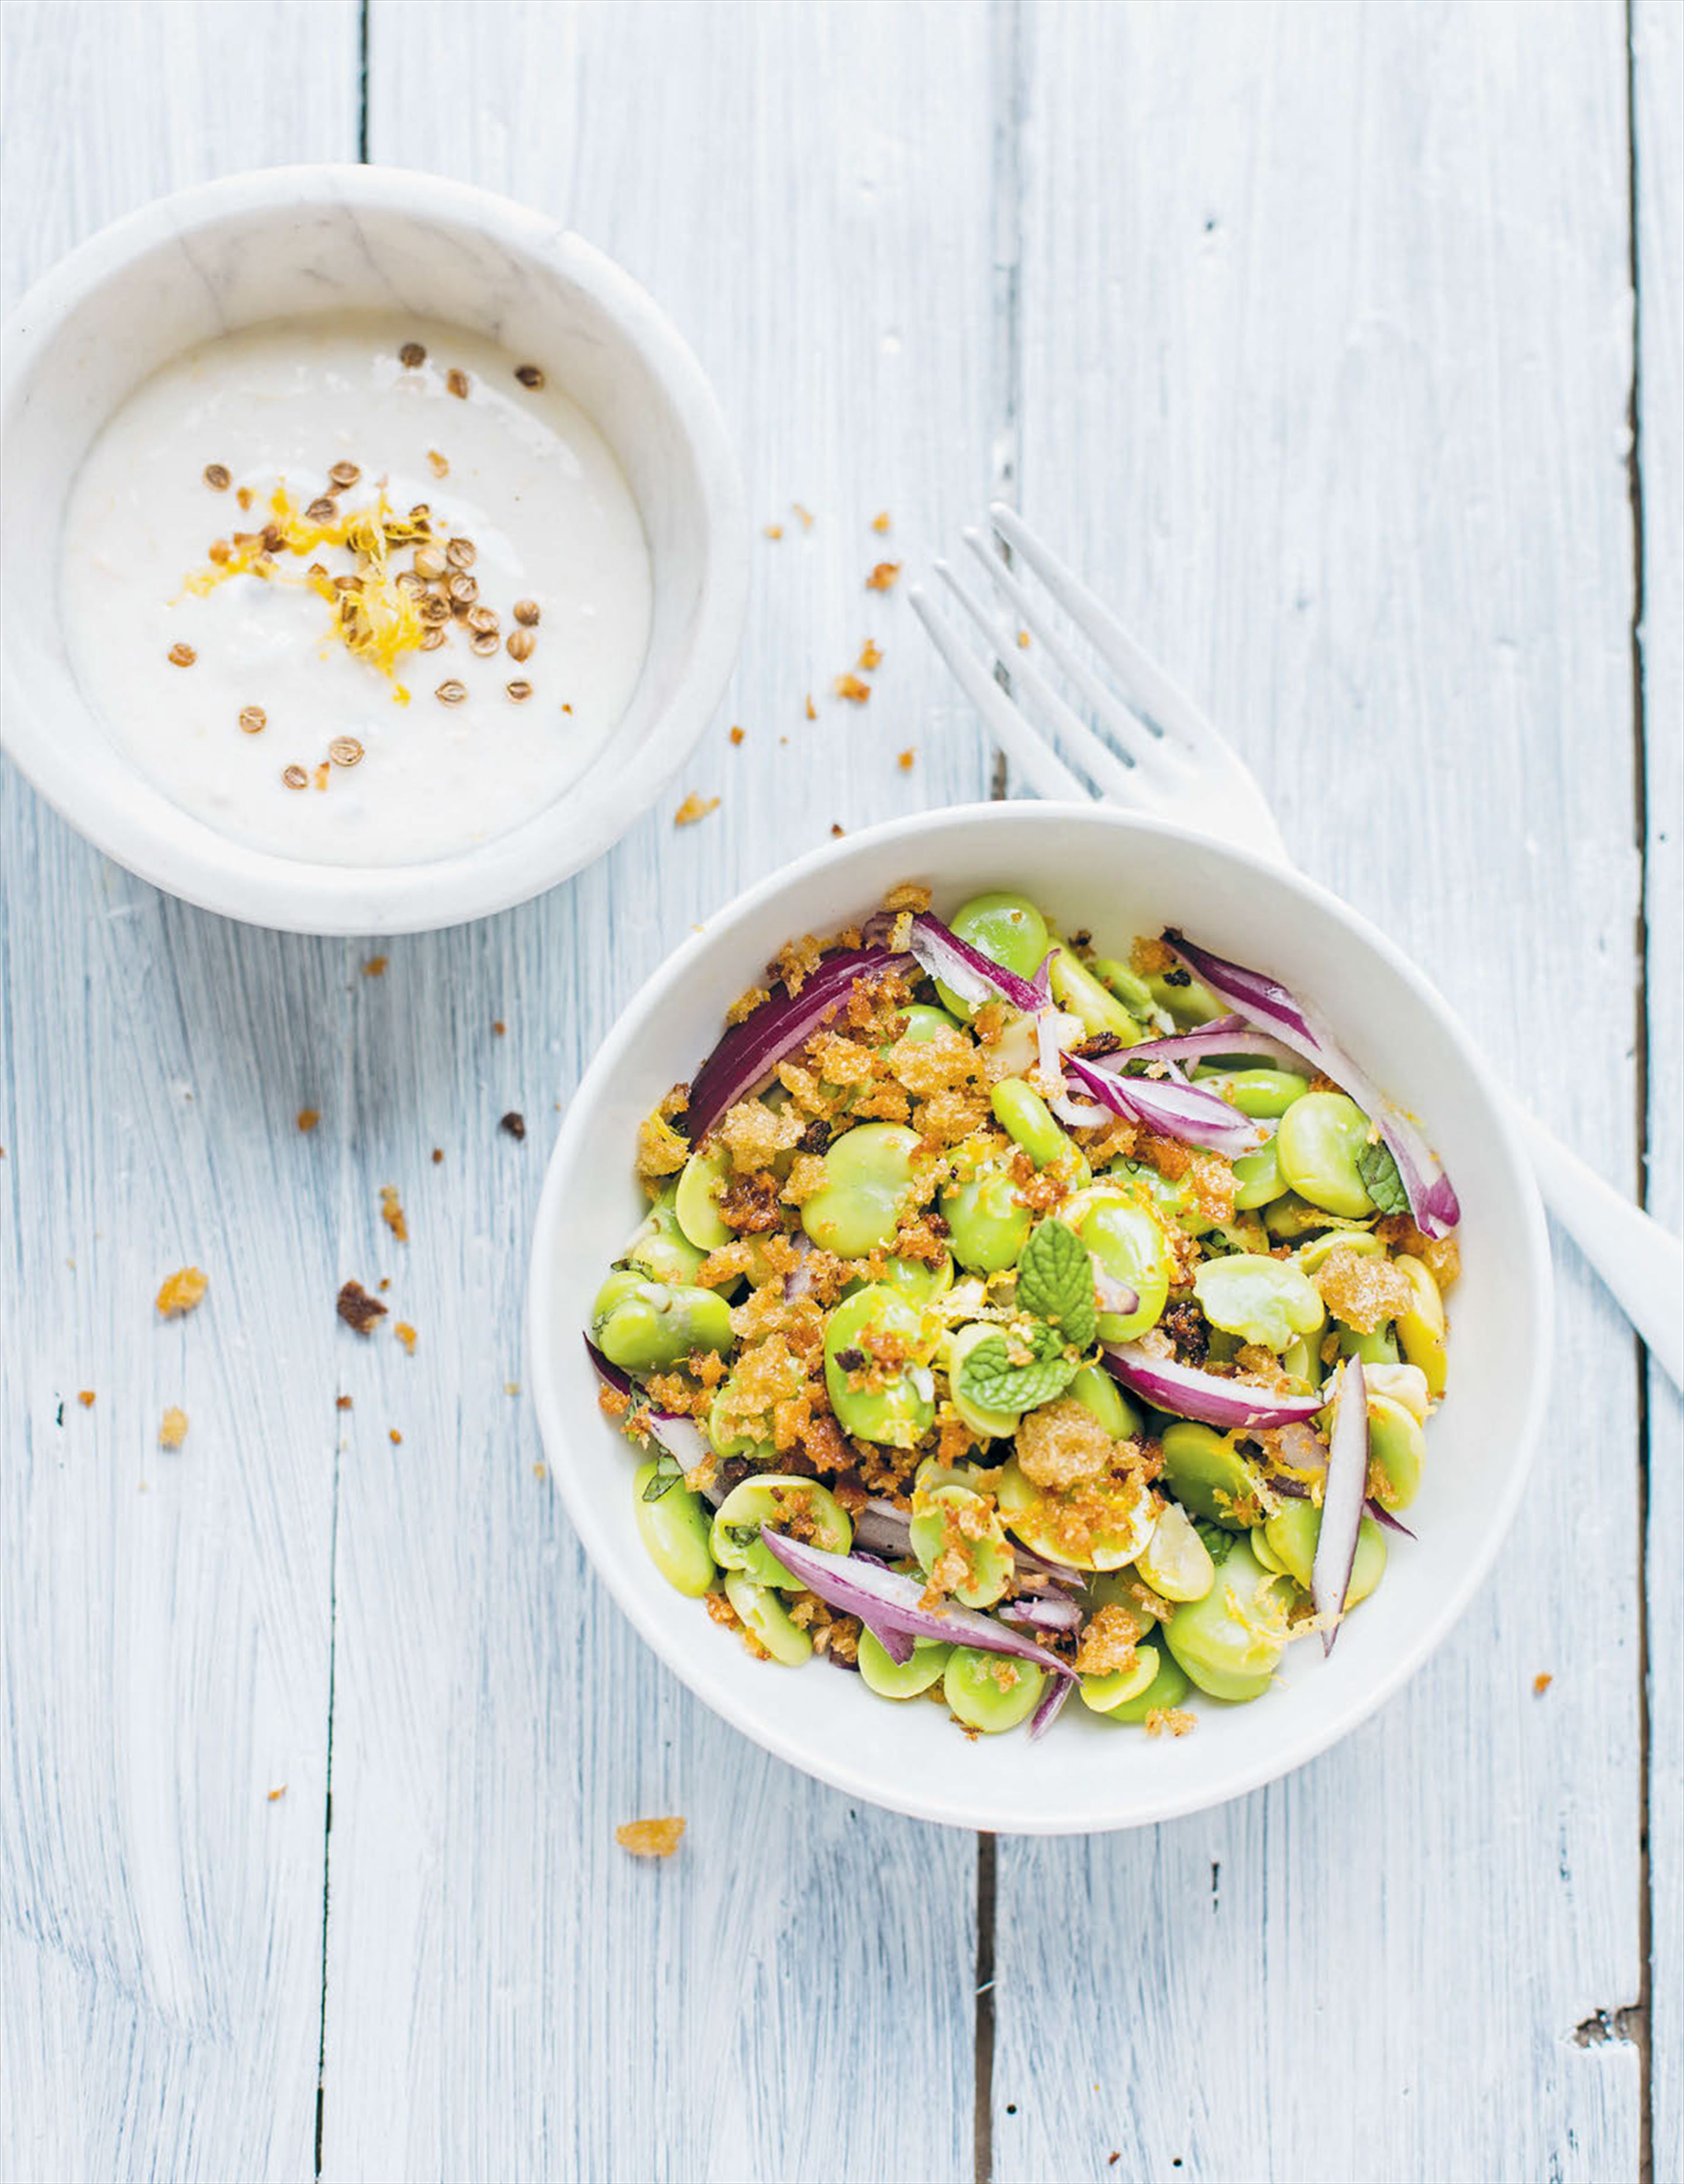 Moroccan broad bean salad with yoghurt and crispy breadcrumbs